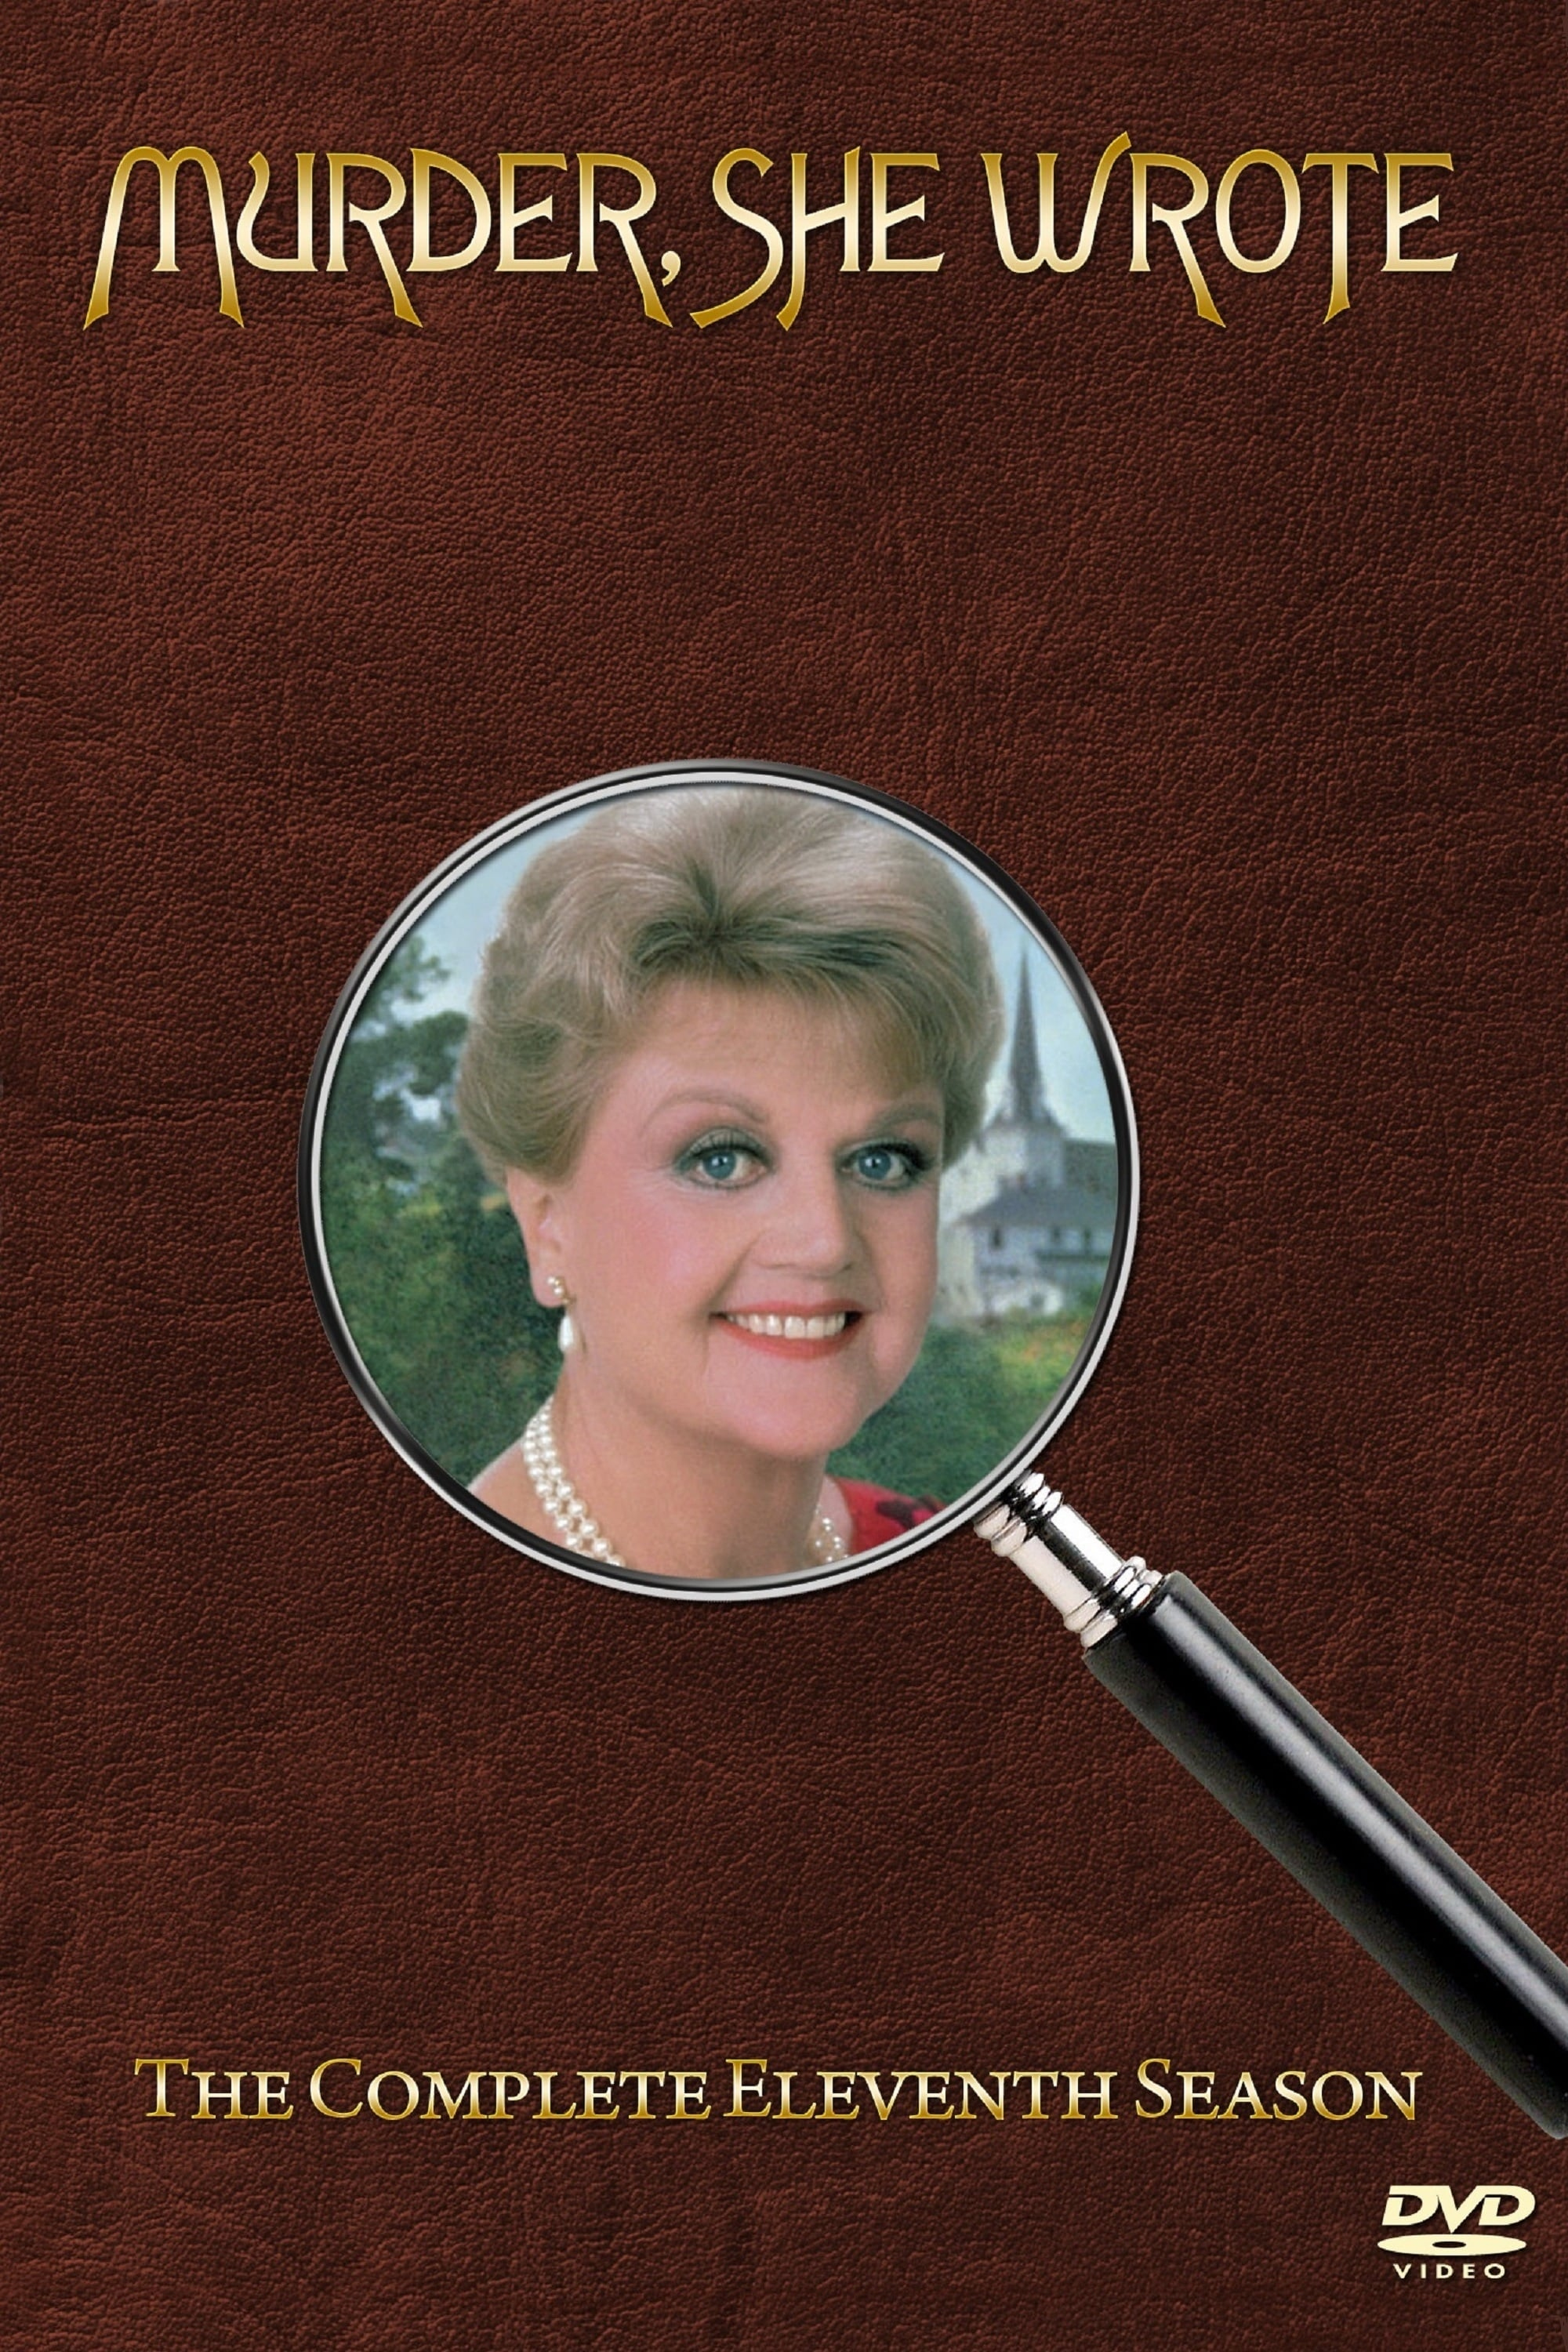 Murder, She Wrote Season 11